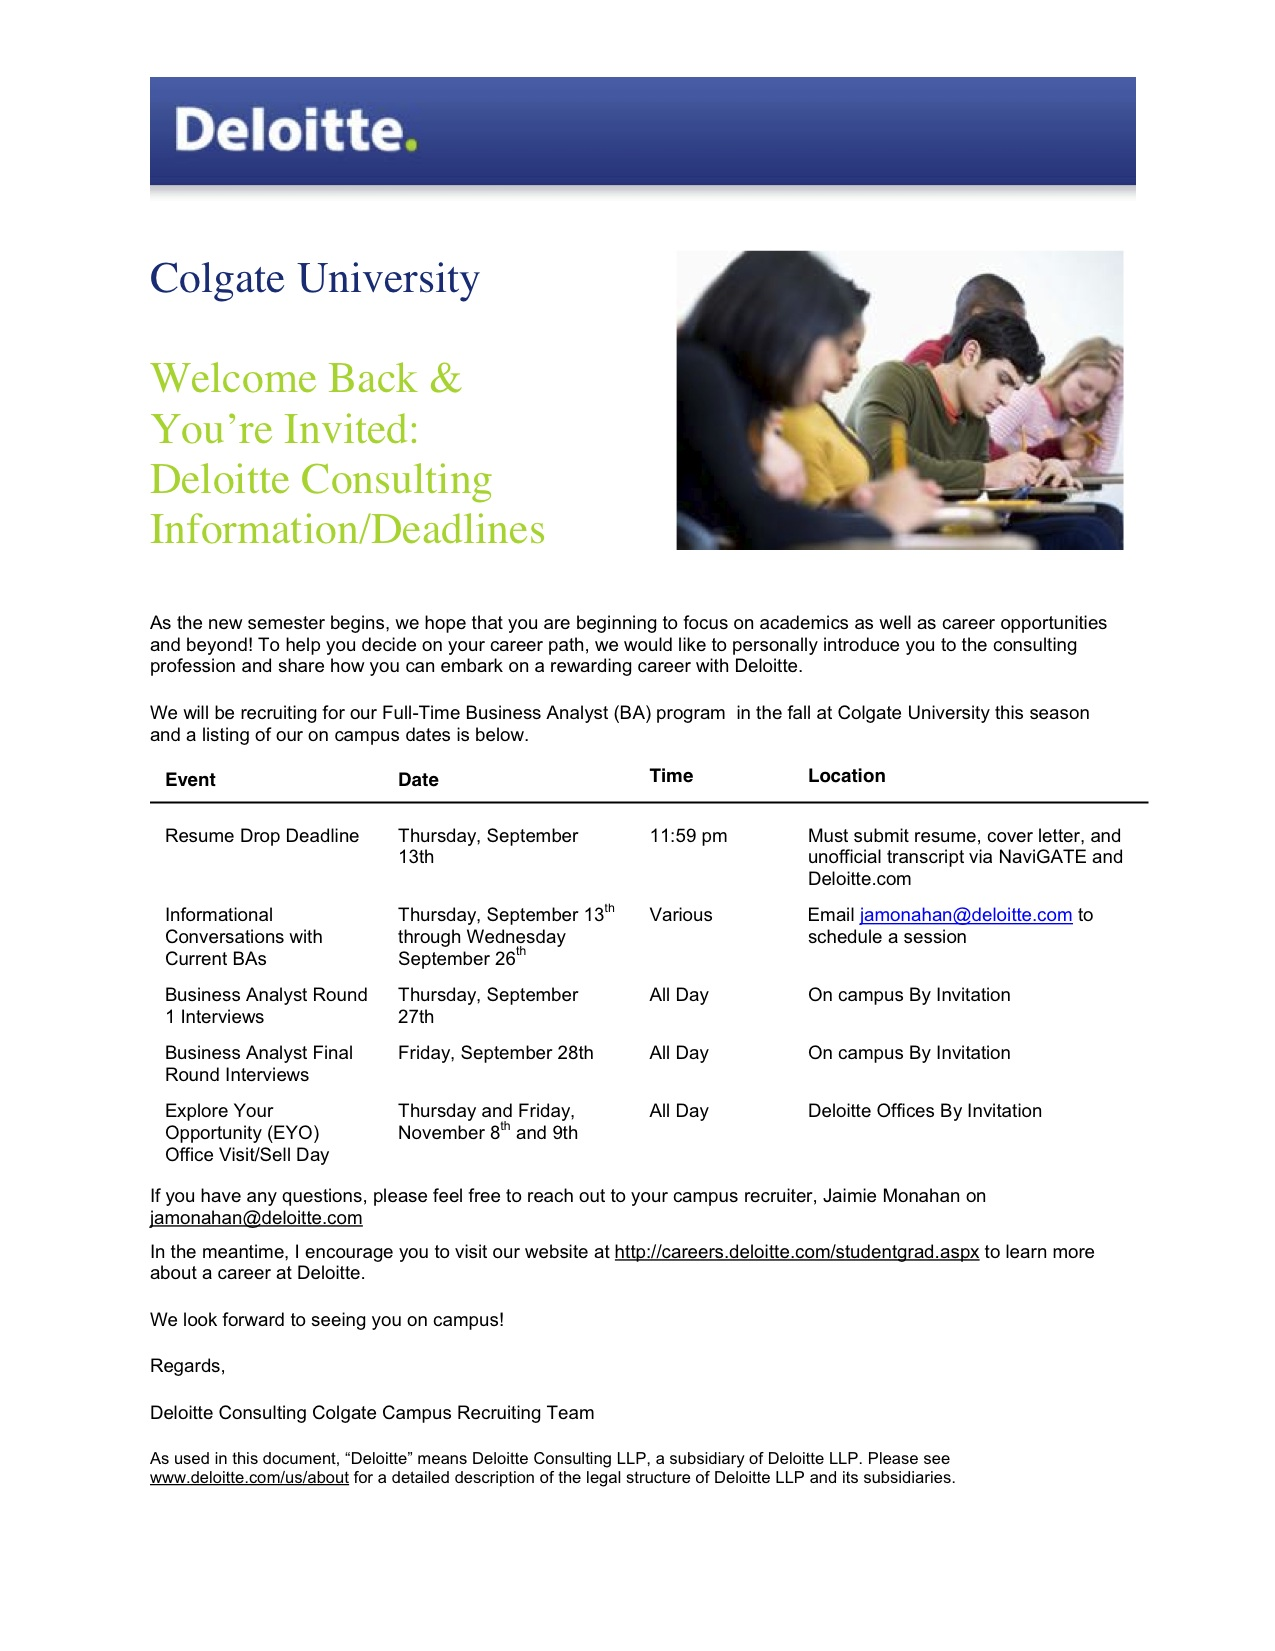 deloitte consulting deadline thursday september 13th